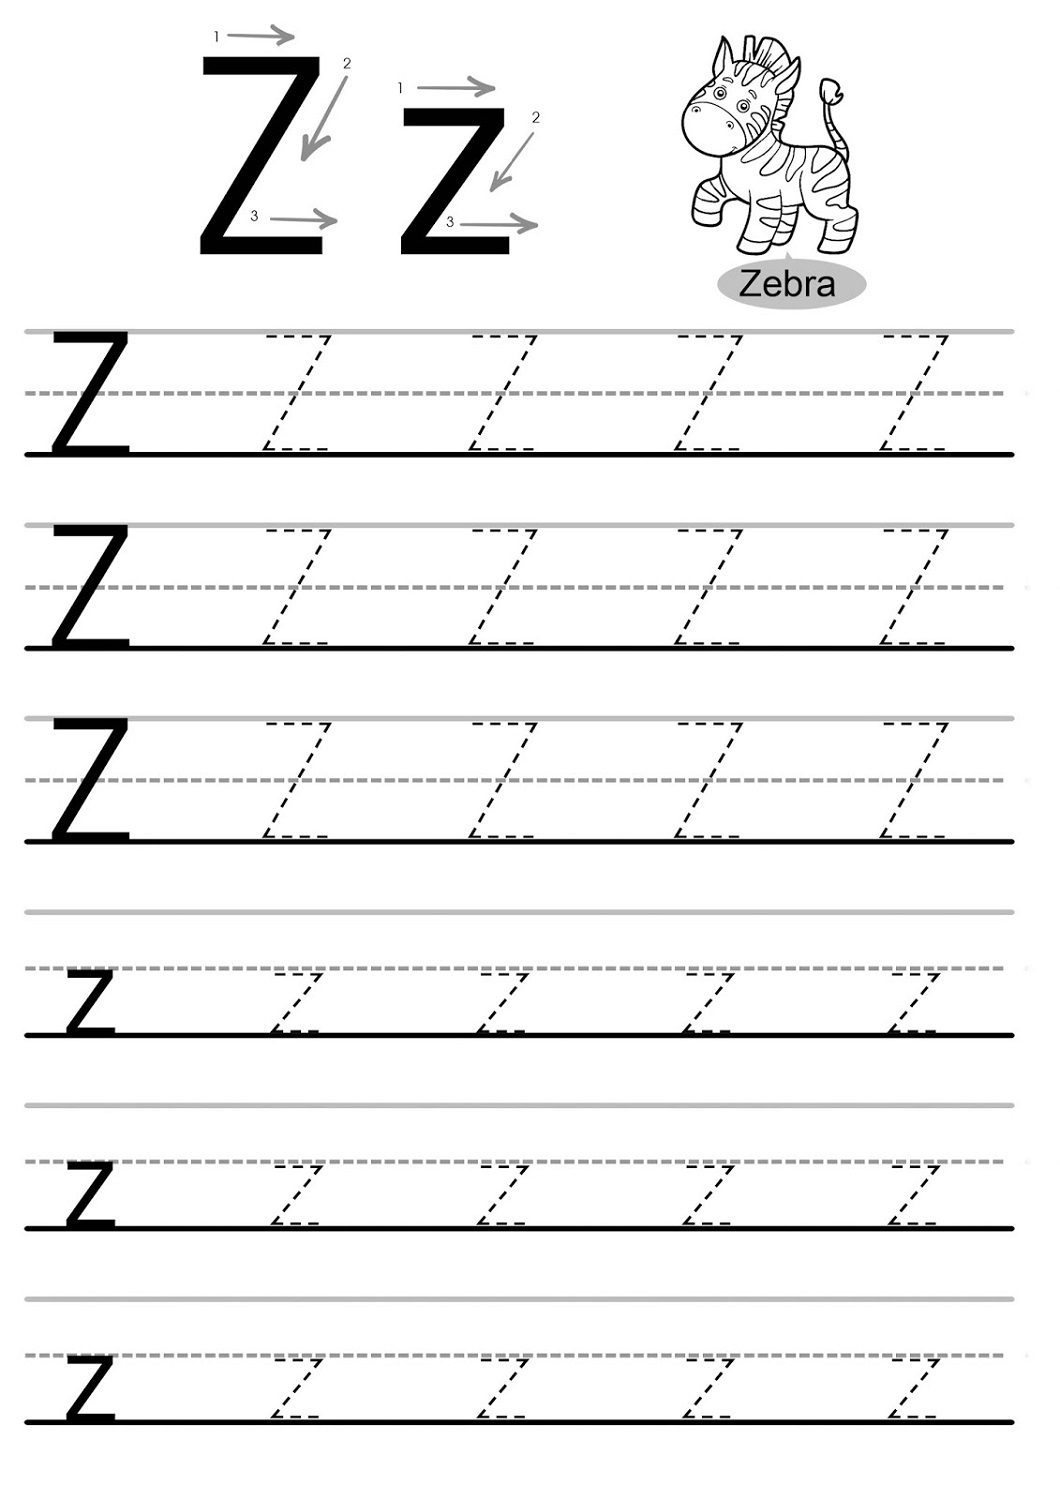 Worksheet Easy Peasy | Printable Worksheets And Activities with regard to Letter S Worksheets Easy Peasy